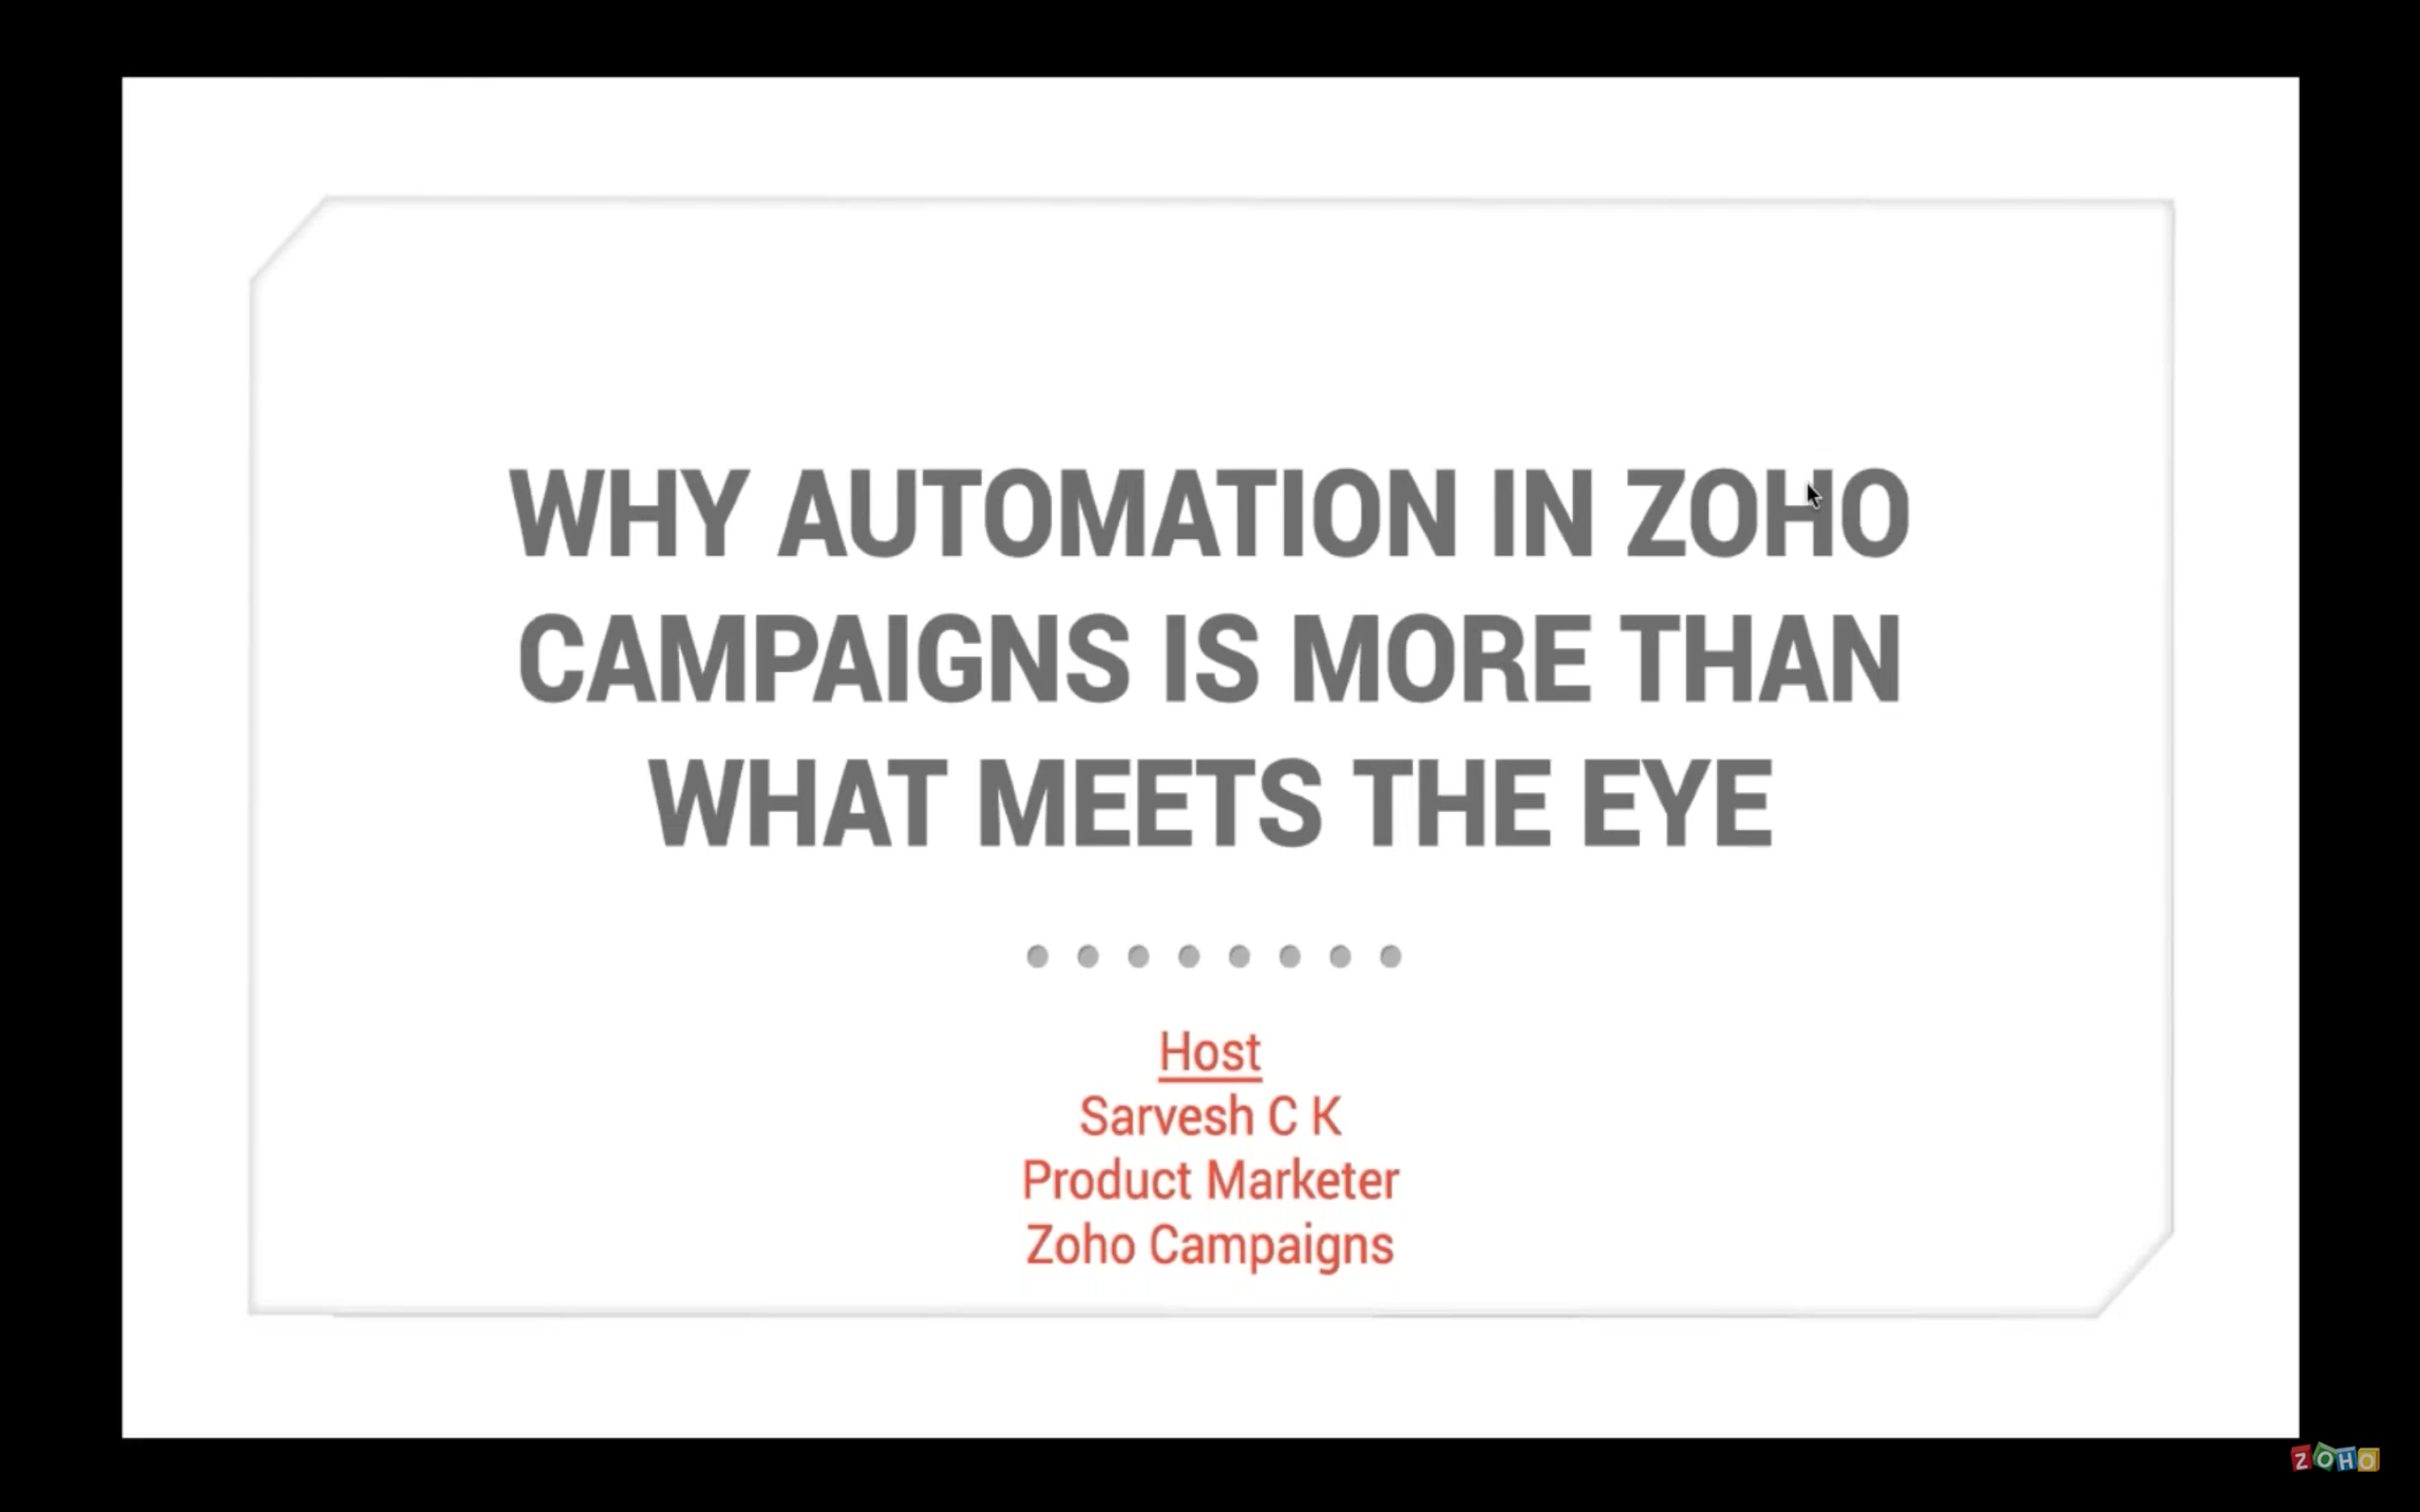 Automation in Zoho Campaigns